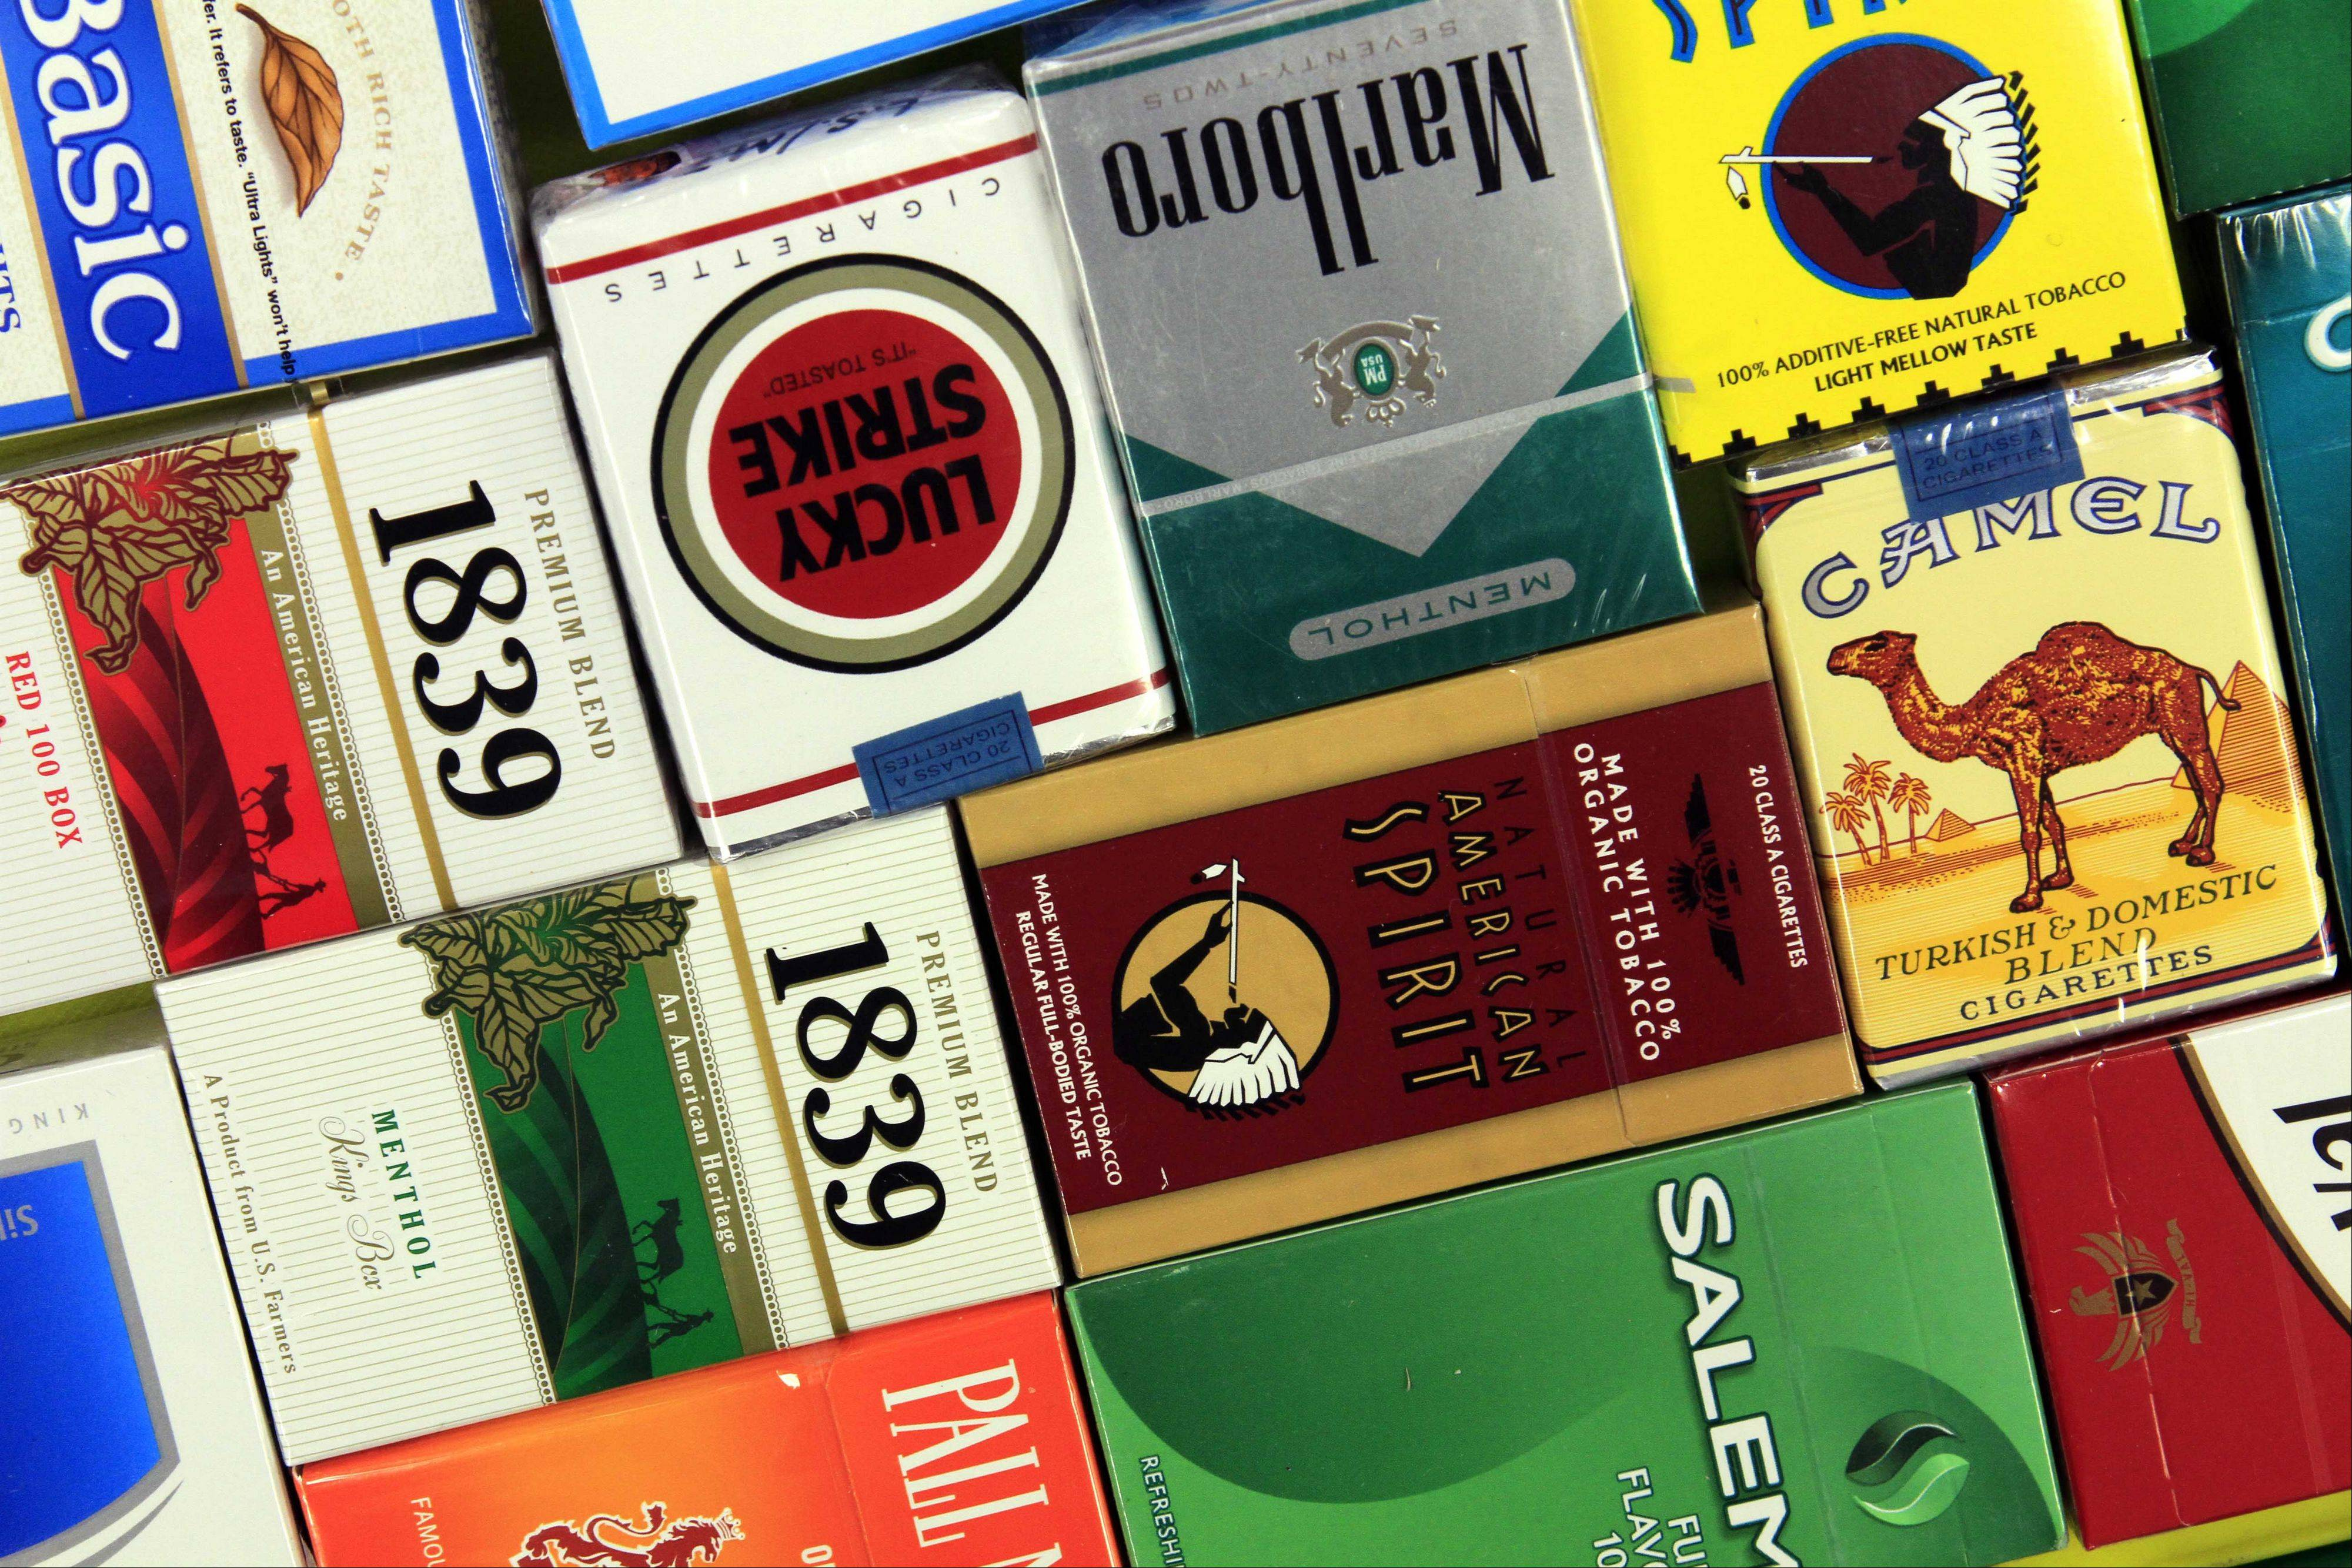 Chicago authorities say they�re cracking down on the illegal sale of cigarettes.